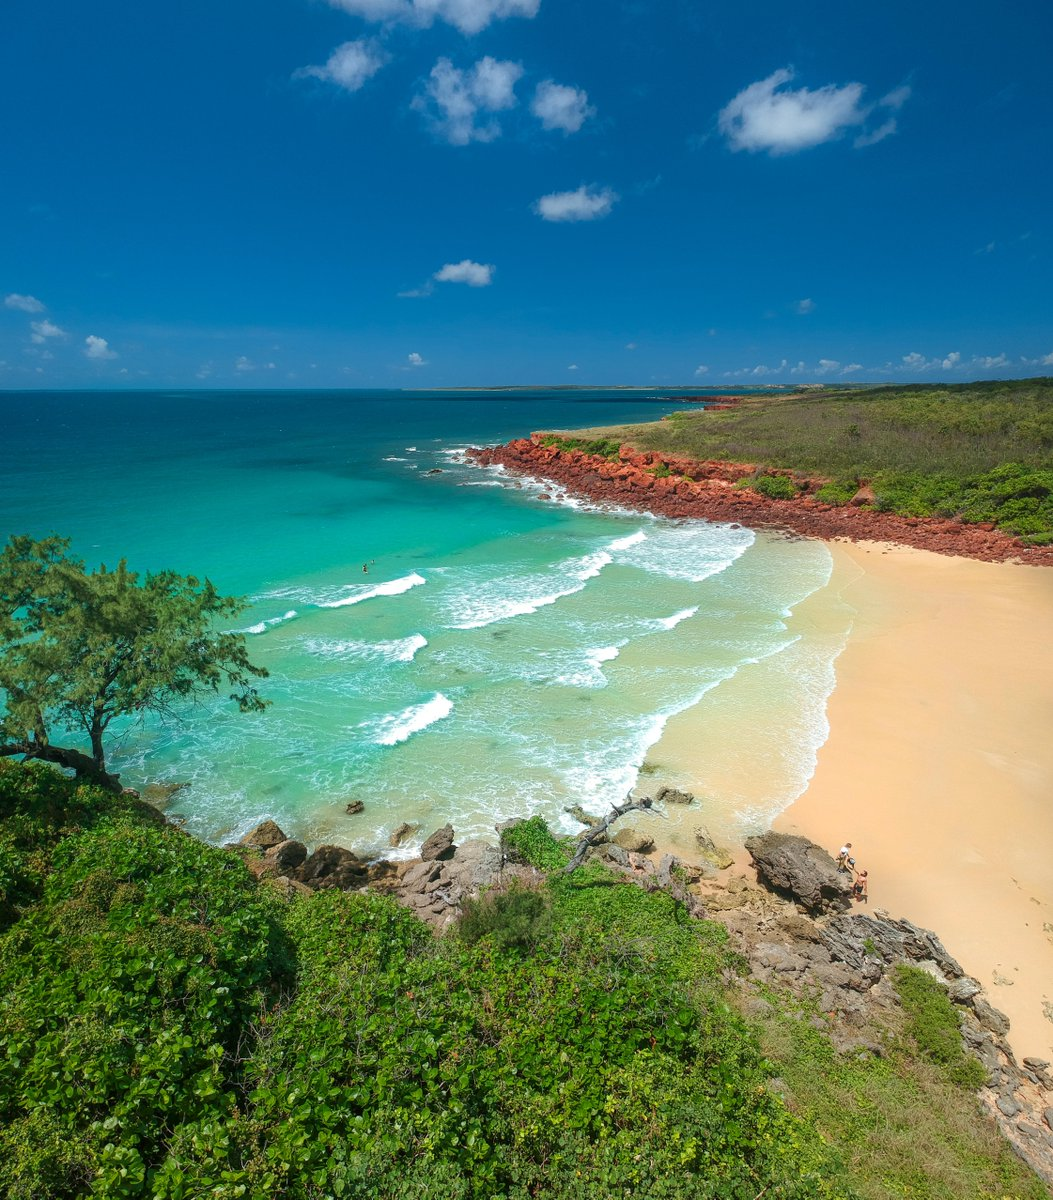 Australia On Twitter Did You Know They Have Beaches Like This In Ausoutbacknt Photo Markfitz At Turtle Beach Tourismtopend Seeaustralia